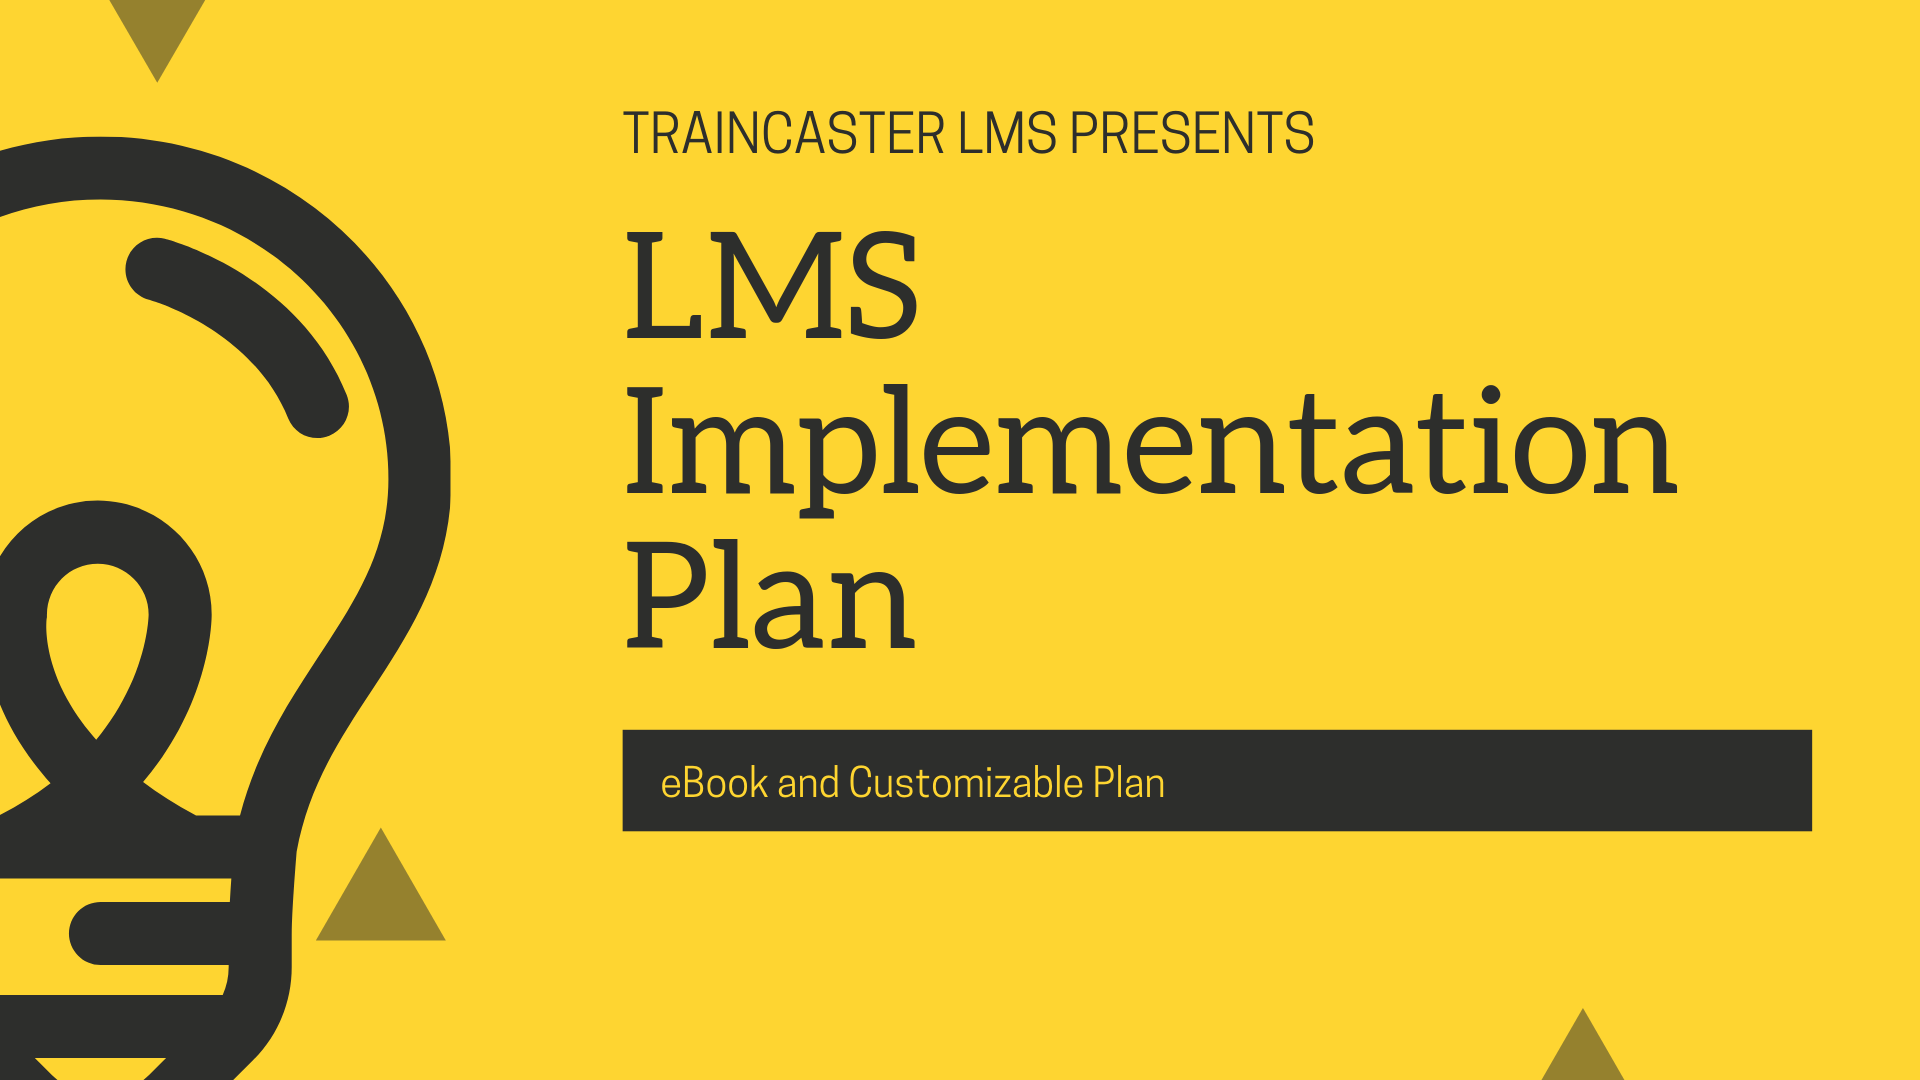 LMS Implementation Plan